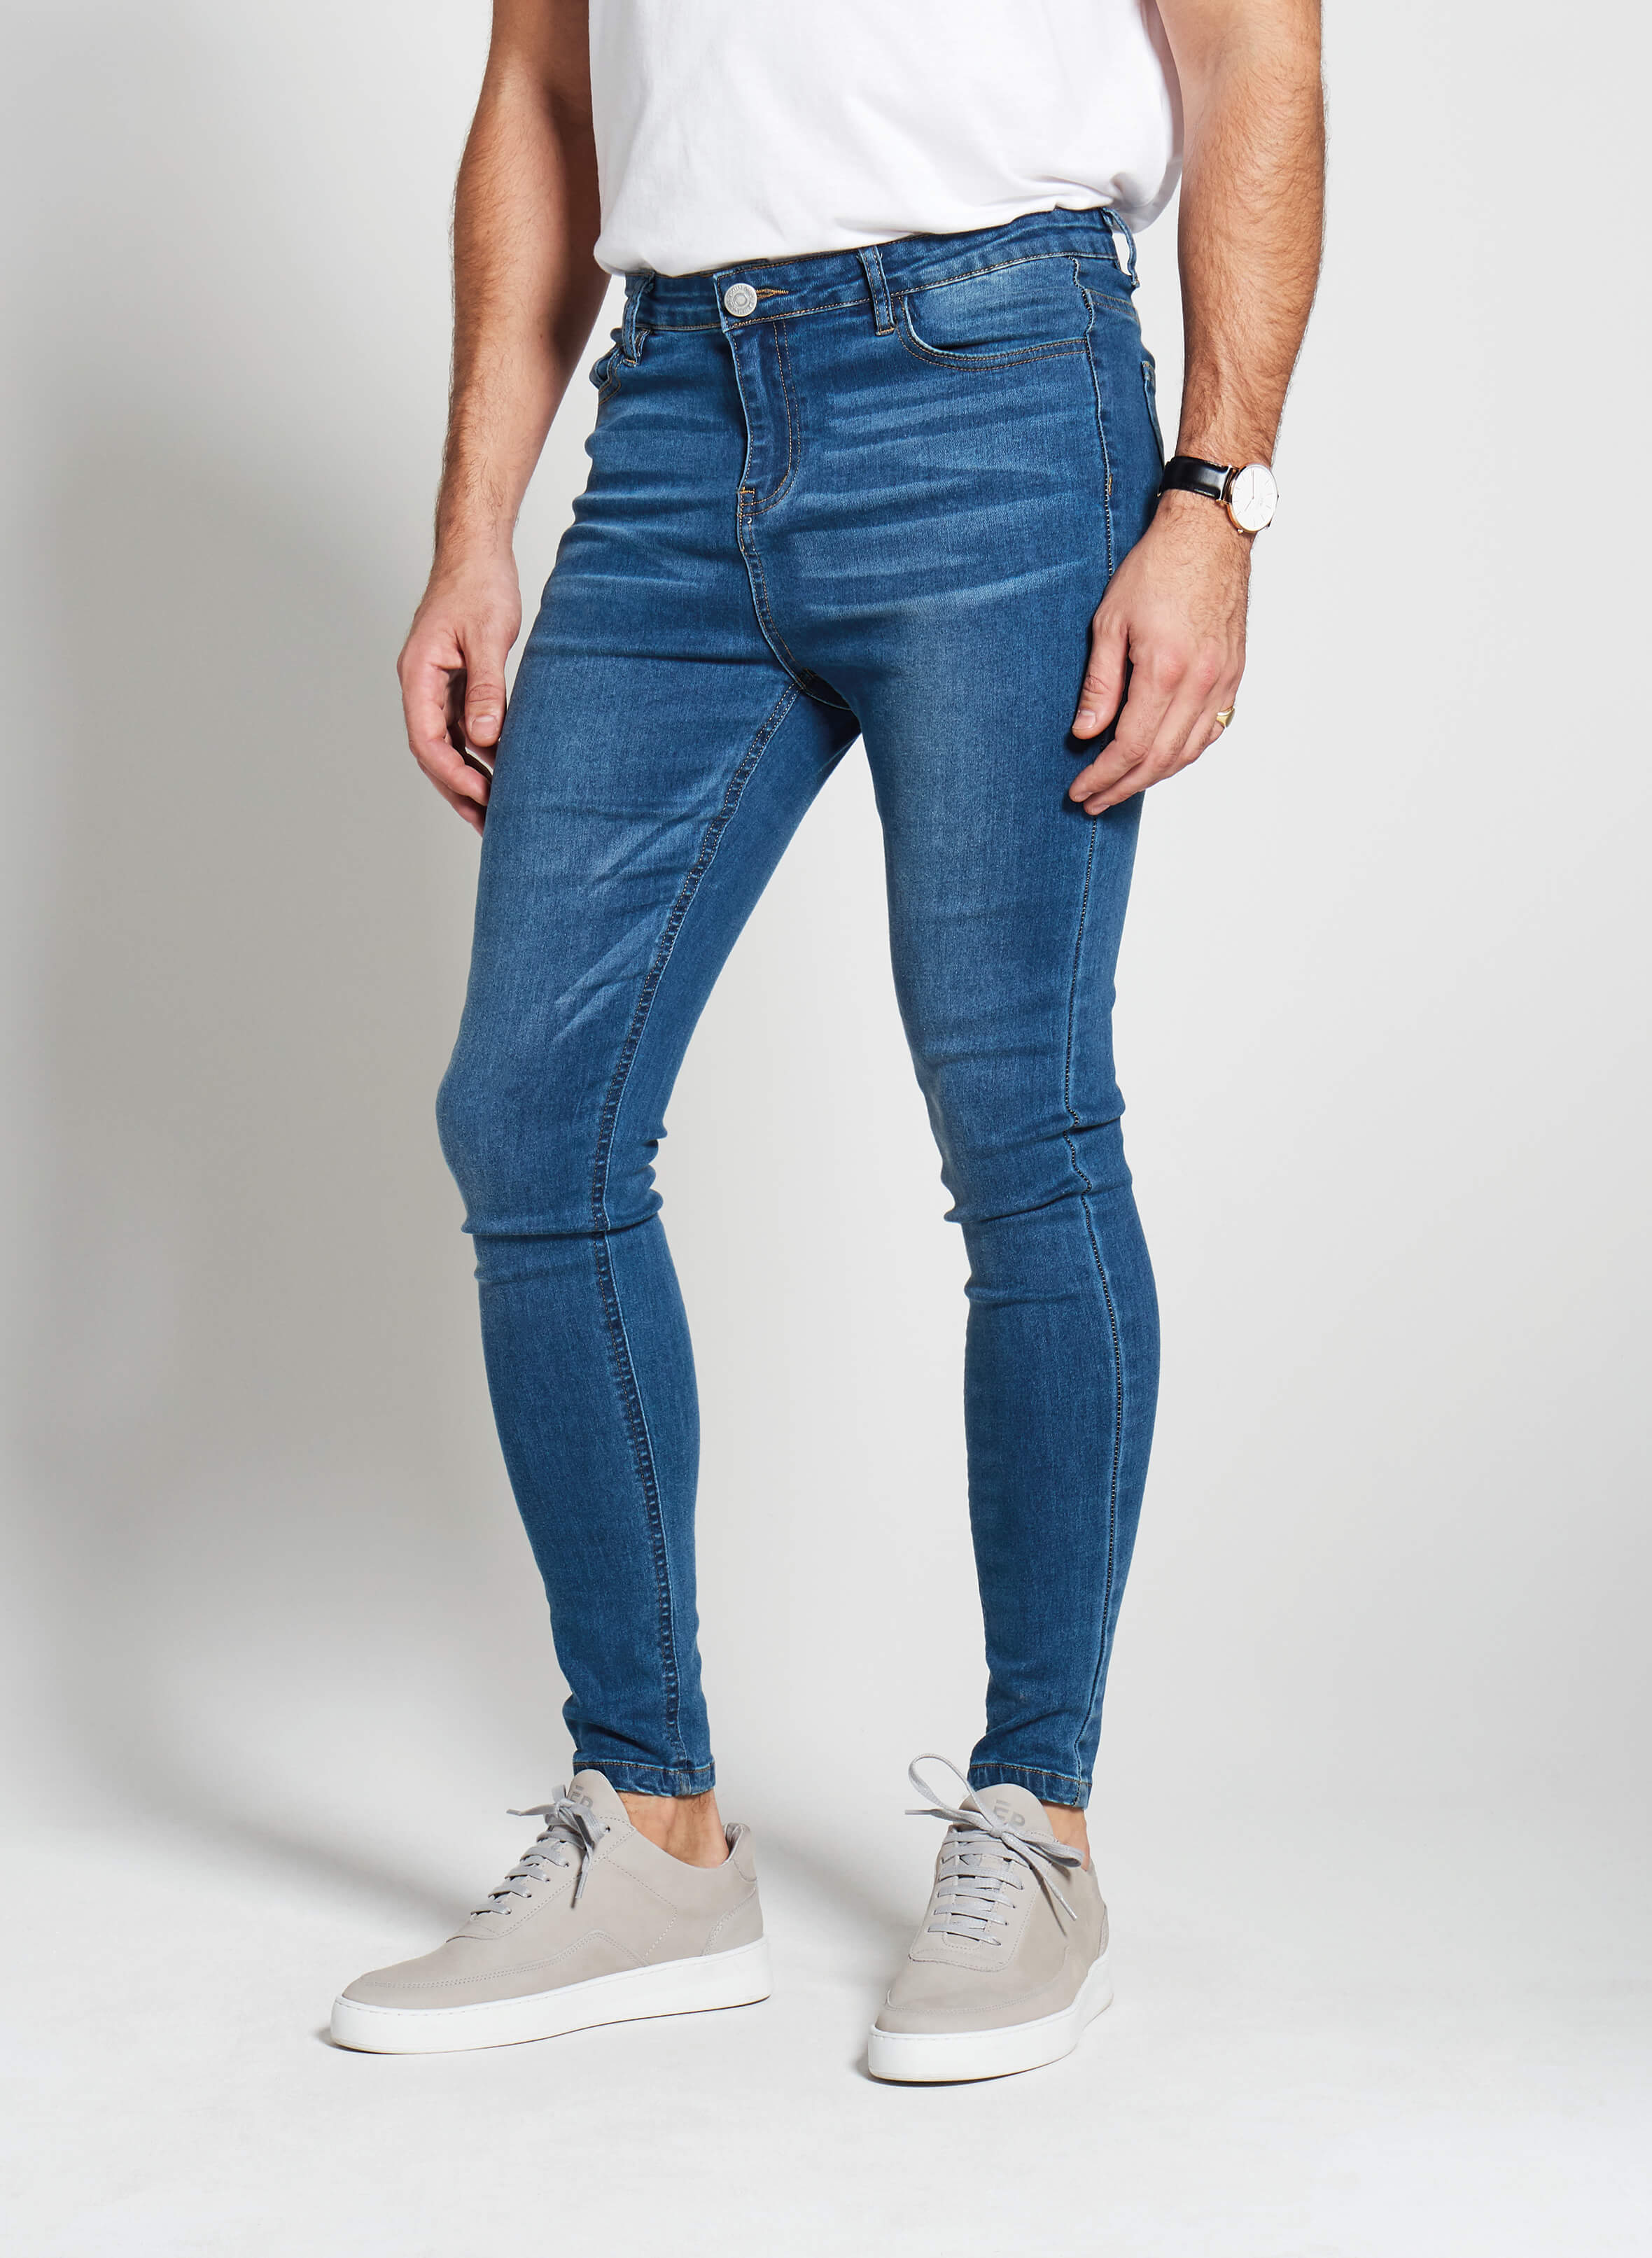 Denim Only® Spray On Jeans - Blue